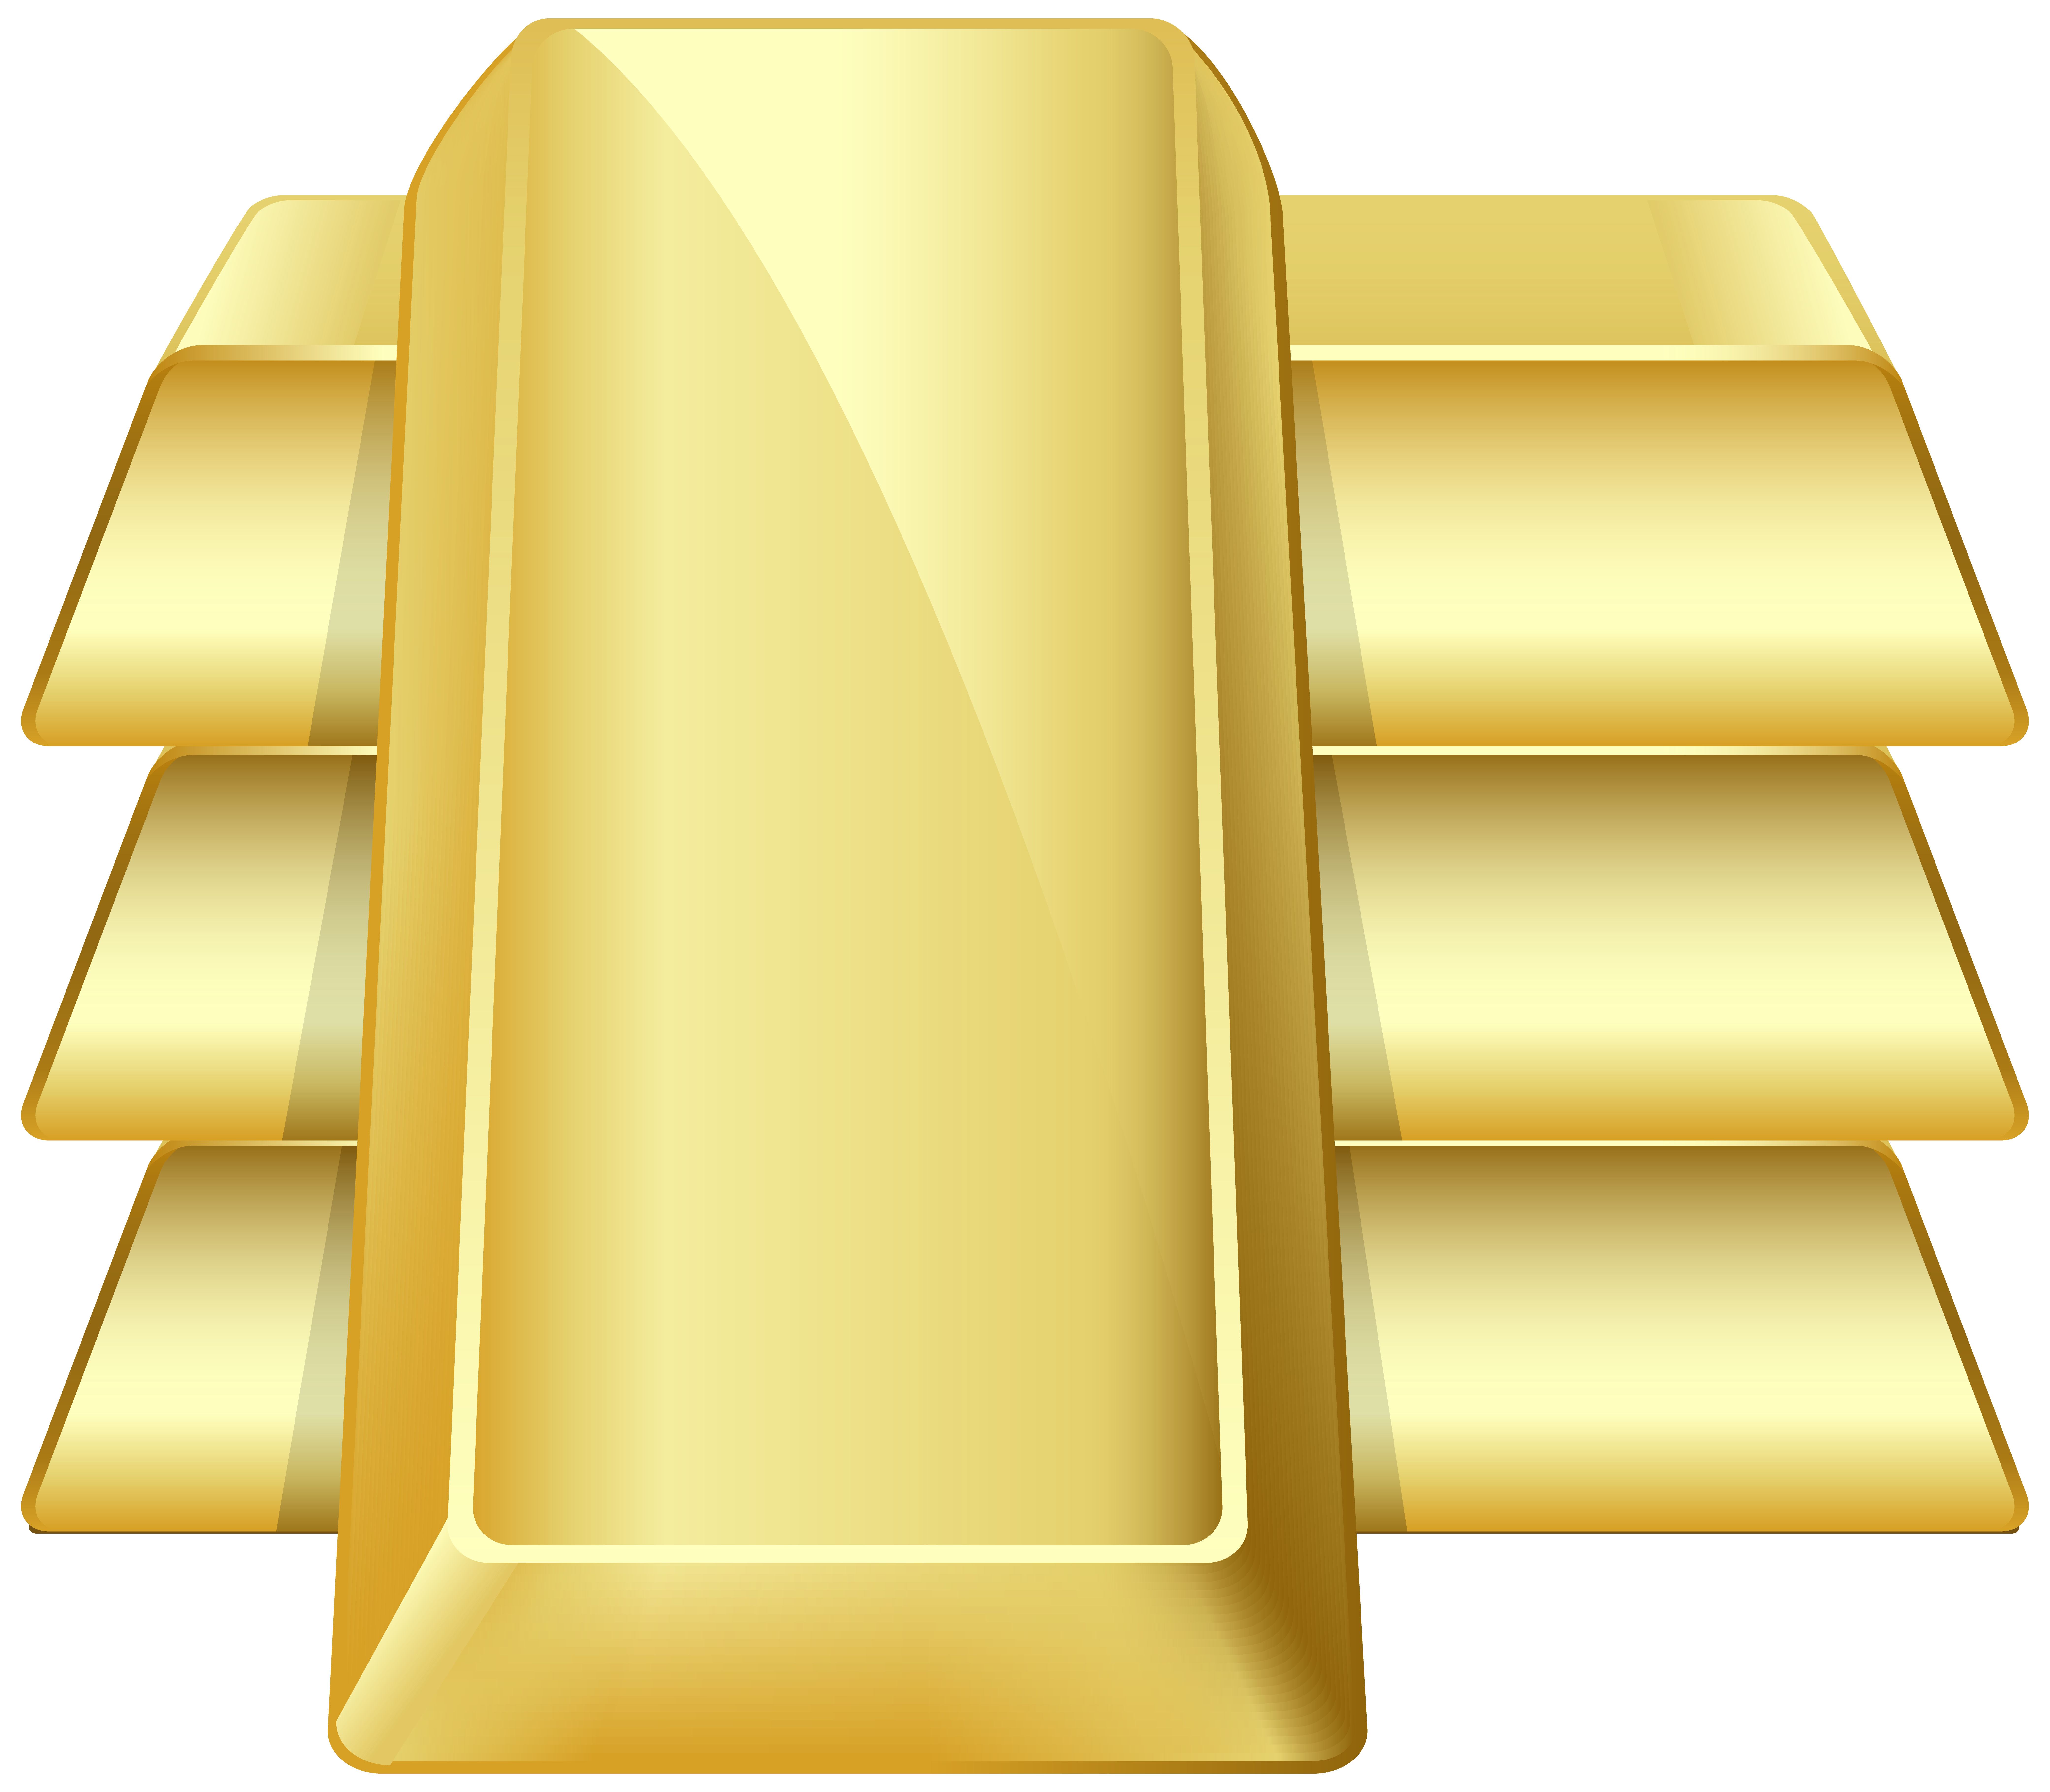 Gold Bars Transparent Png Clip Art Image Gallery Yopriceville High Quality Images And Transparent Png Free Clipart Clip Art Art Images Gold Bar